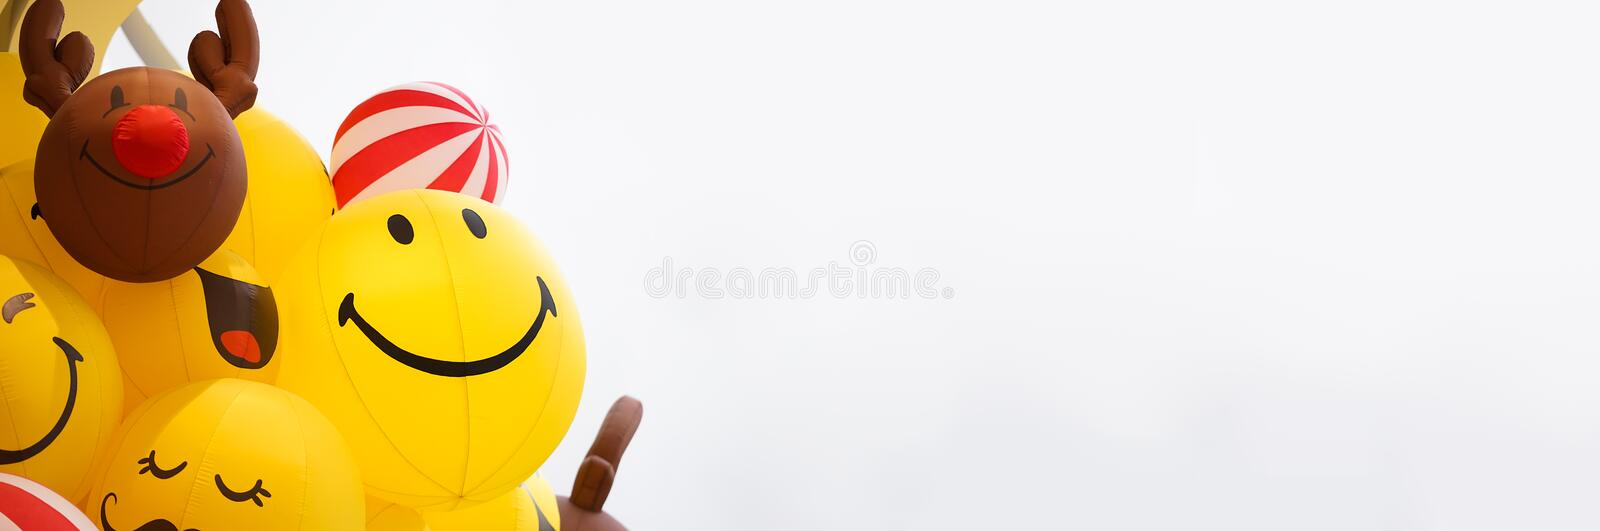 Happy face balloons. A soft focus on the yellow balloon with smiling face from worm eye view. Long website banner with copy space royalty free stock photos